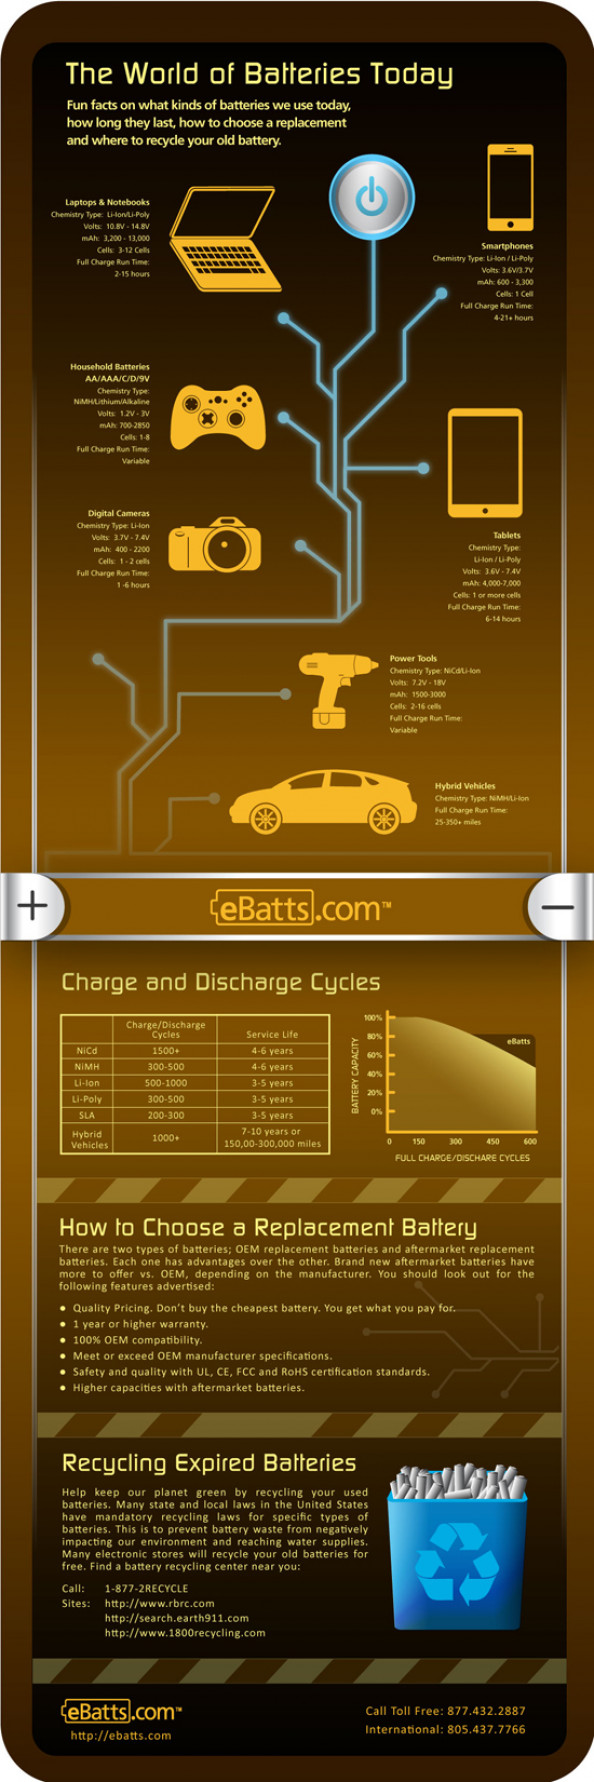 The World of Batteries Today Infographic